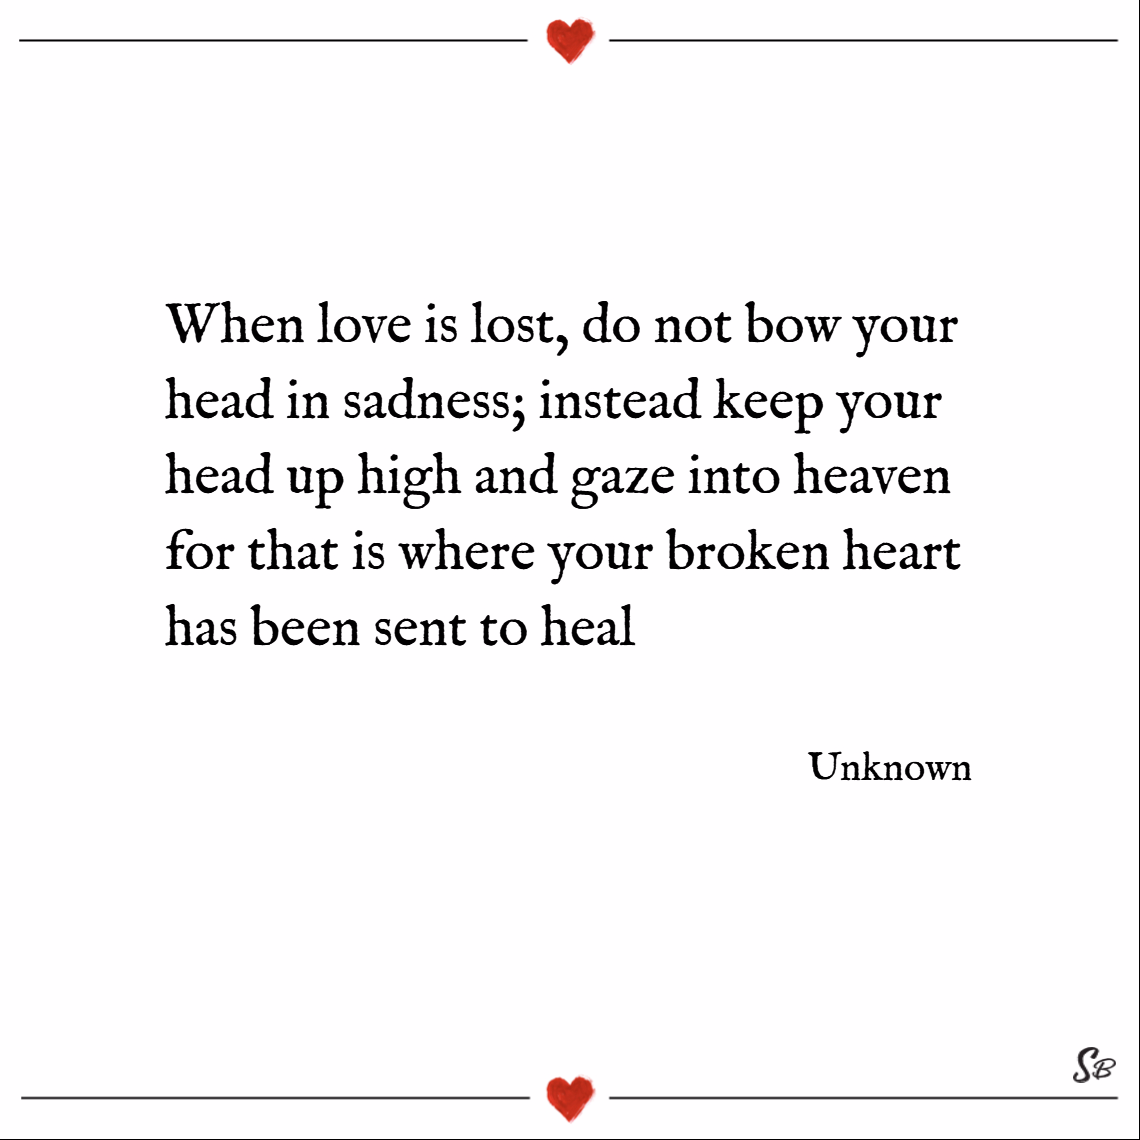 When love is lost, do not bow your head in sadness; instead keep your head up high and gaze into heaven for that is where your broken heart has been sent to heal. – unknown